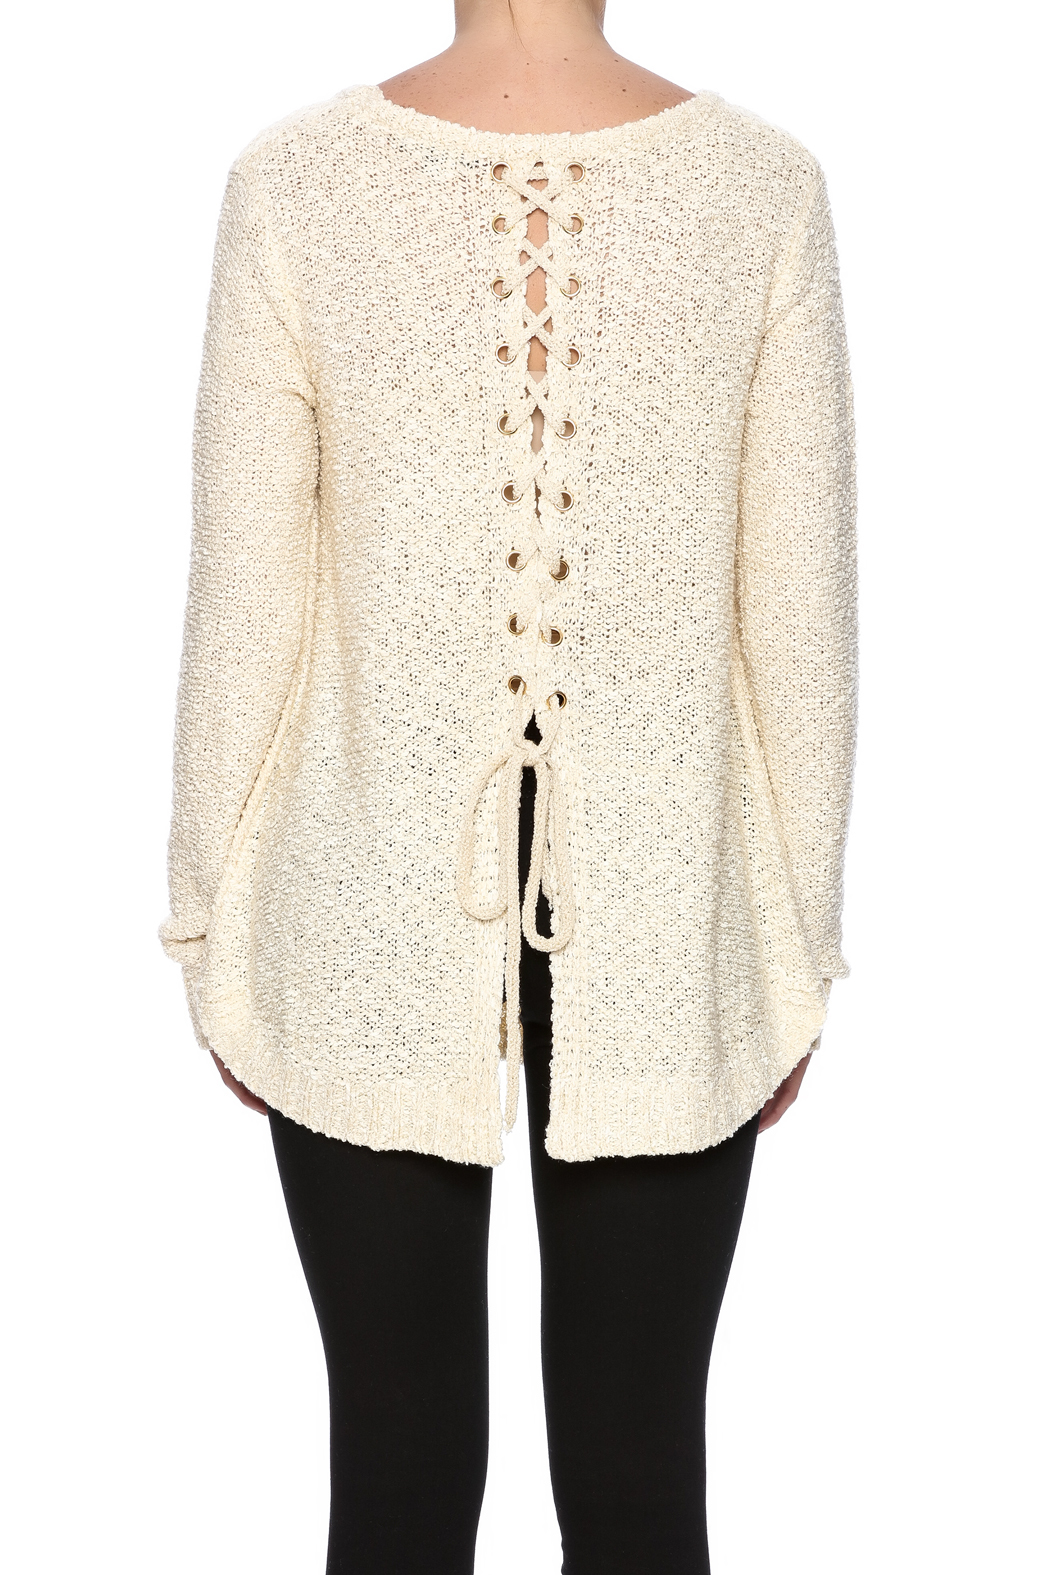 e98f42fe20 Staccato Lace Up Back Sweater from Kentucky by Lennon   Lace ...